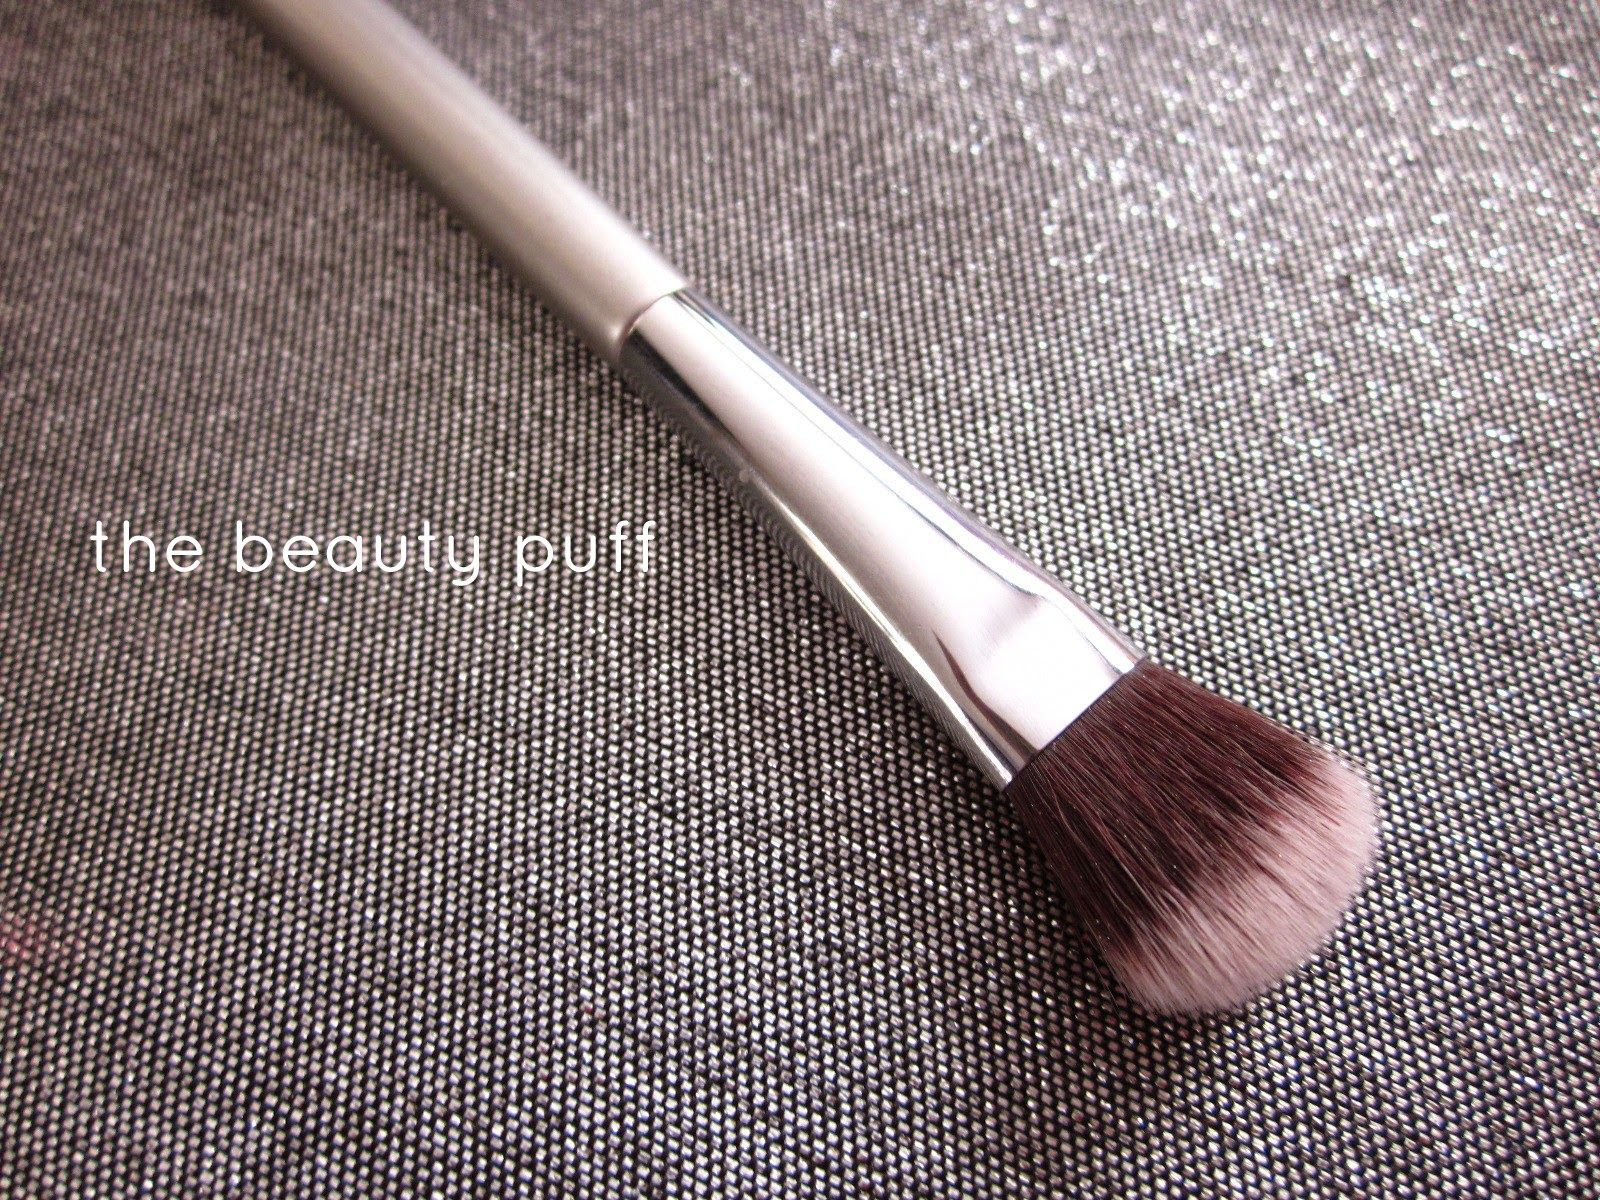 It Cosmetics x ULTA Airbrush All-Over Shadow Brush #119 by IT Cosmetics #5